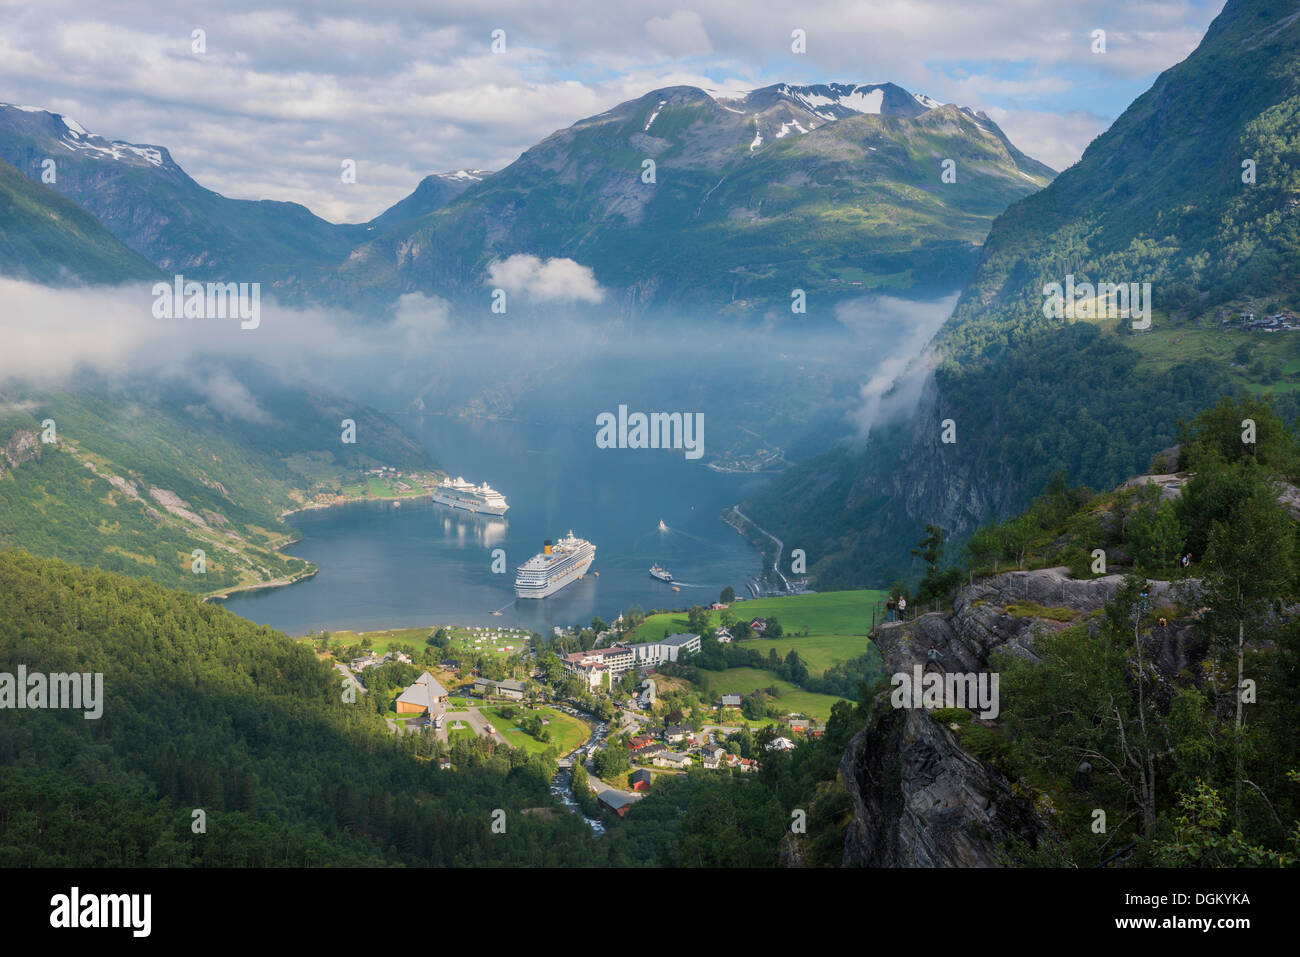 Geirangerfjord with cruise ships, view from the lookout point of Flydalsjuvet towards mountains at the rear, Geiranger - Stock Image